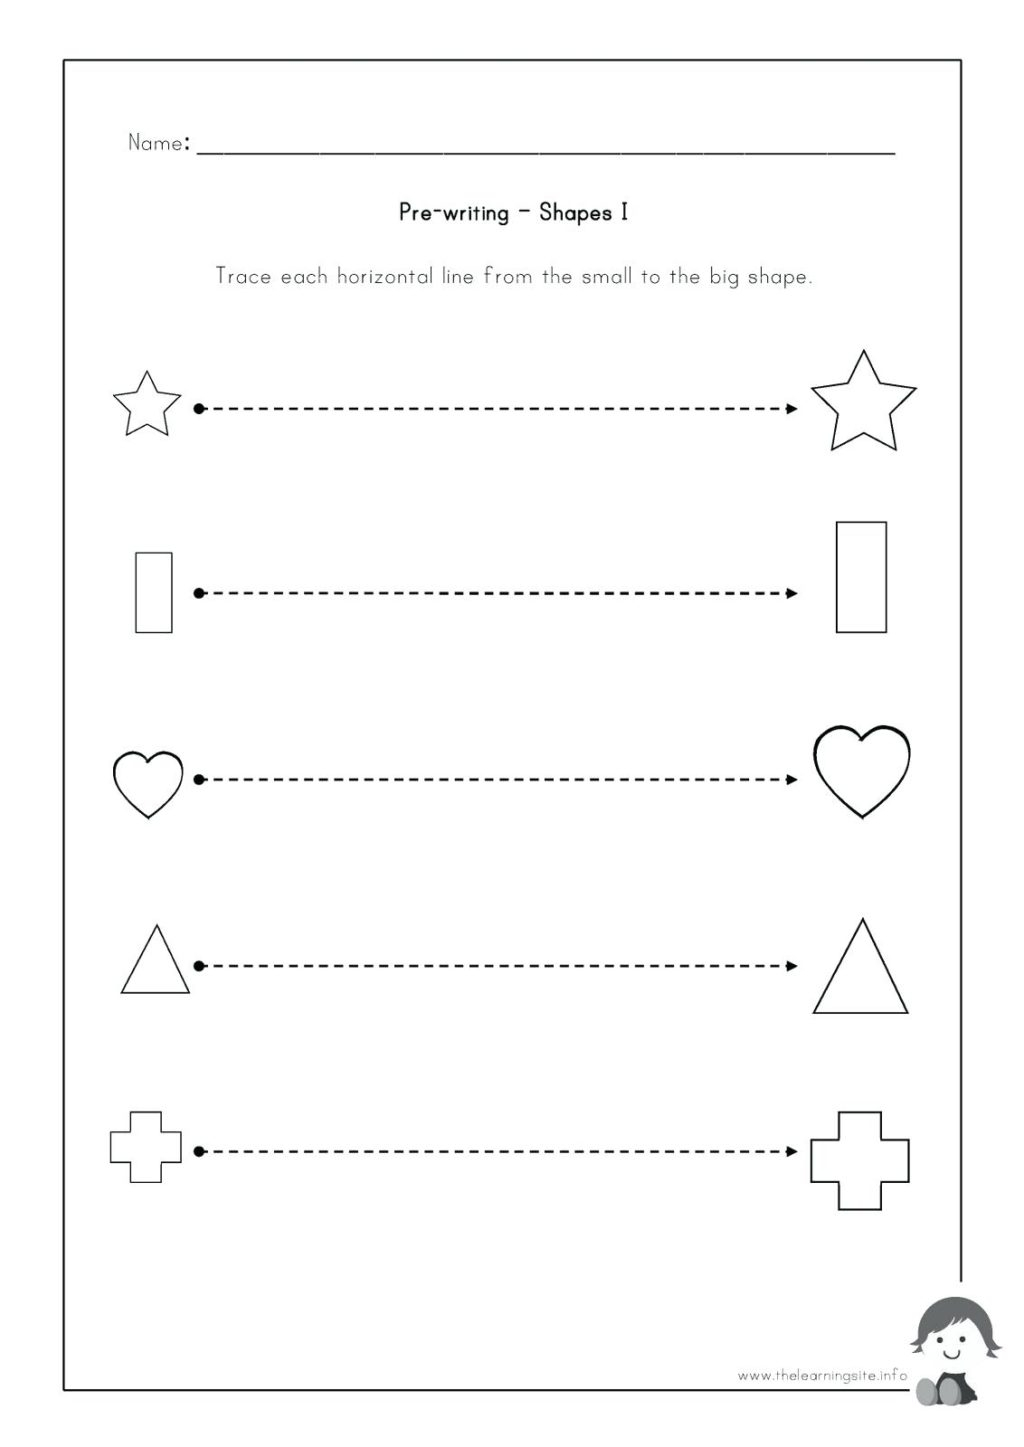 Worksheet ~ Writing Skills Worksheets Outstanding Image